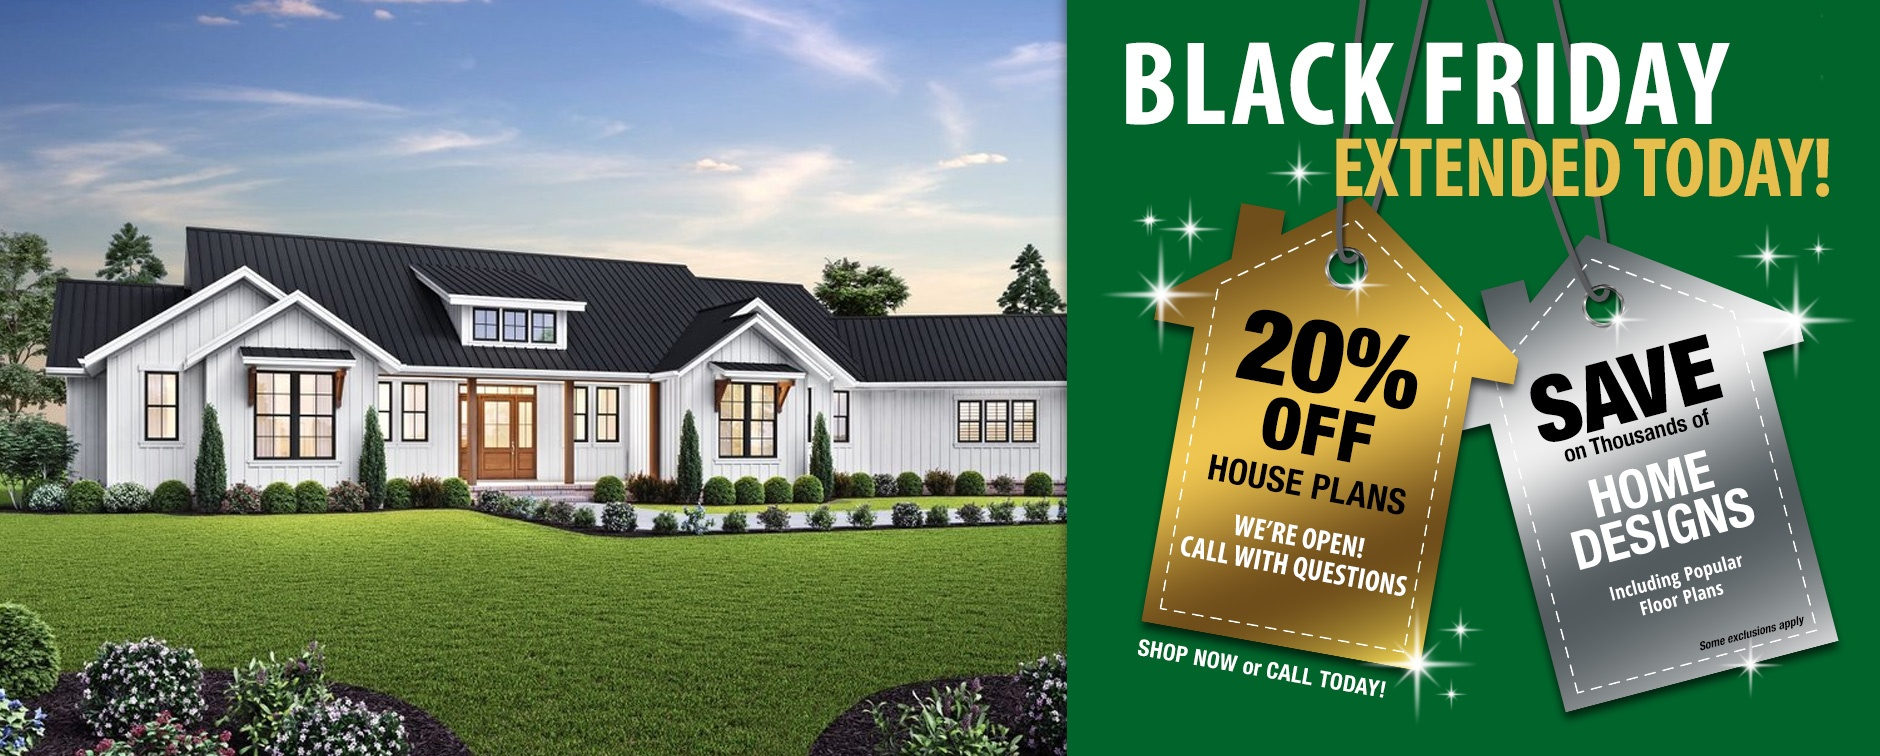 Home Plan Sale 20% Off House Designs